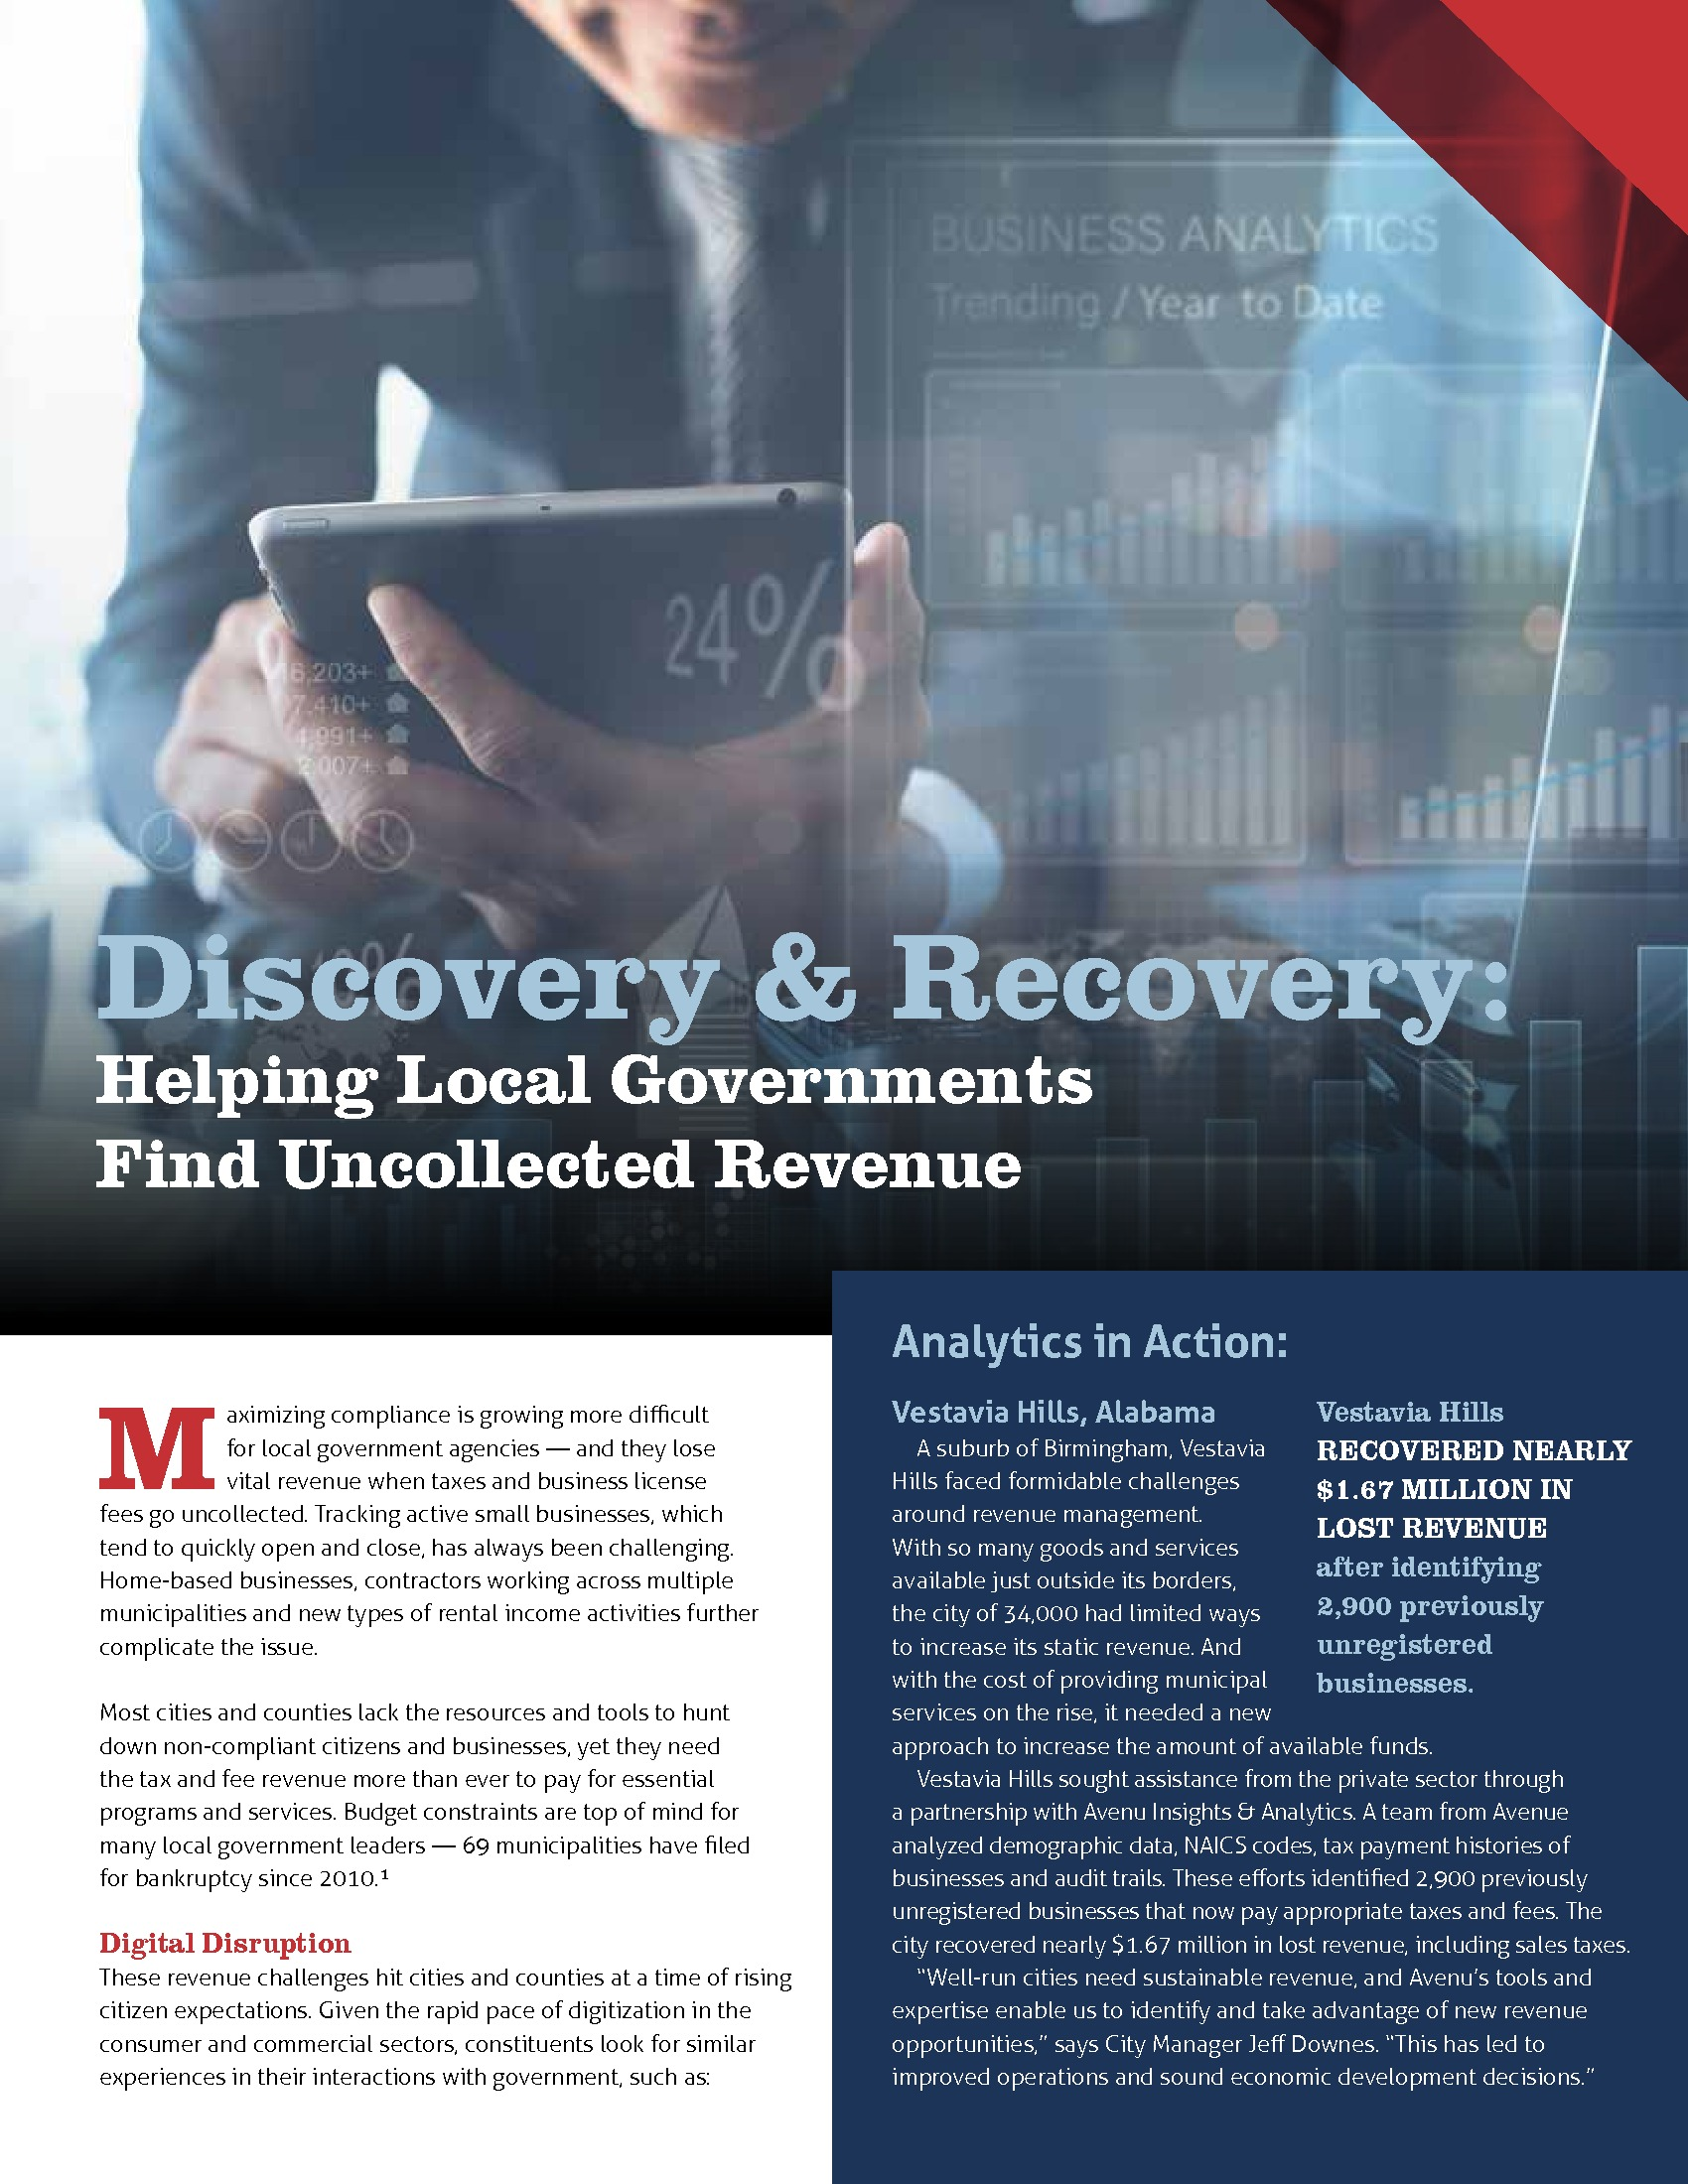 Discovery & Recovery: Helping Local Governments Find Uncollected Revenue